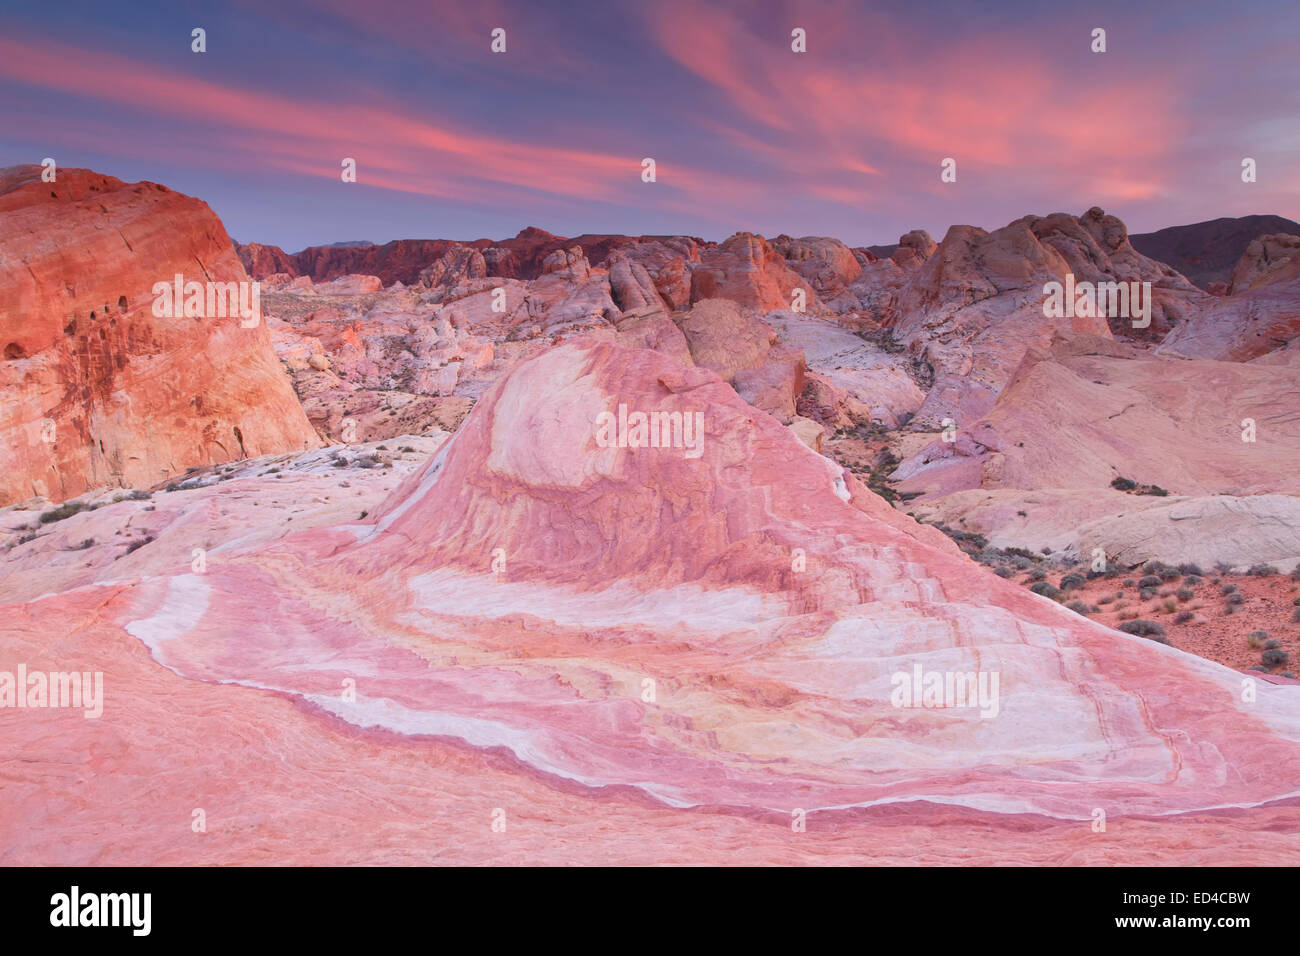 Colorful sandstone, Valley of Fire State Park, near Las Vegas, Nevada. - Stock Image